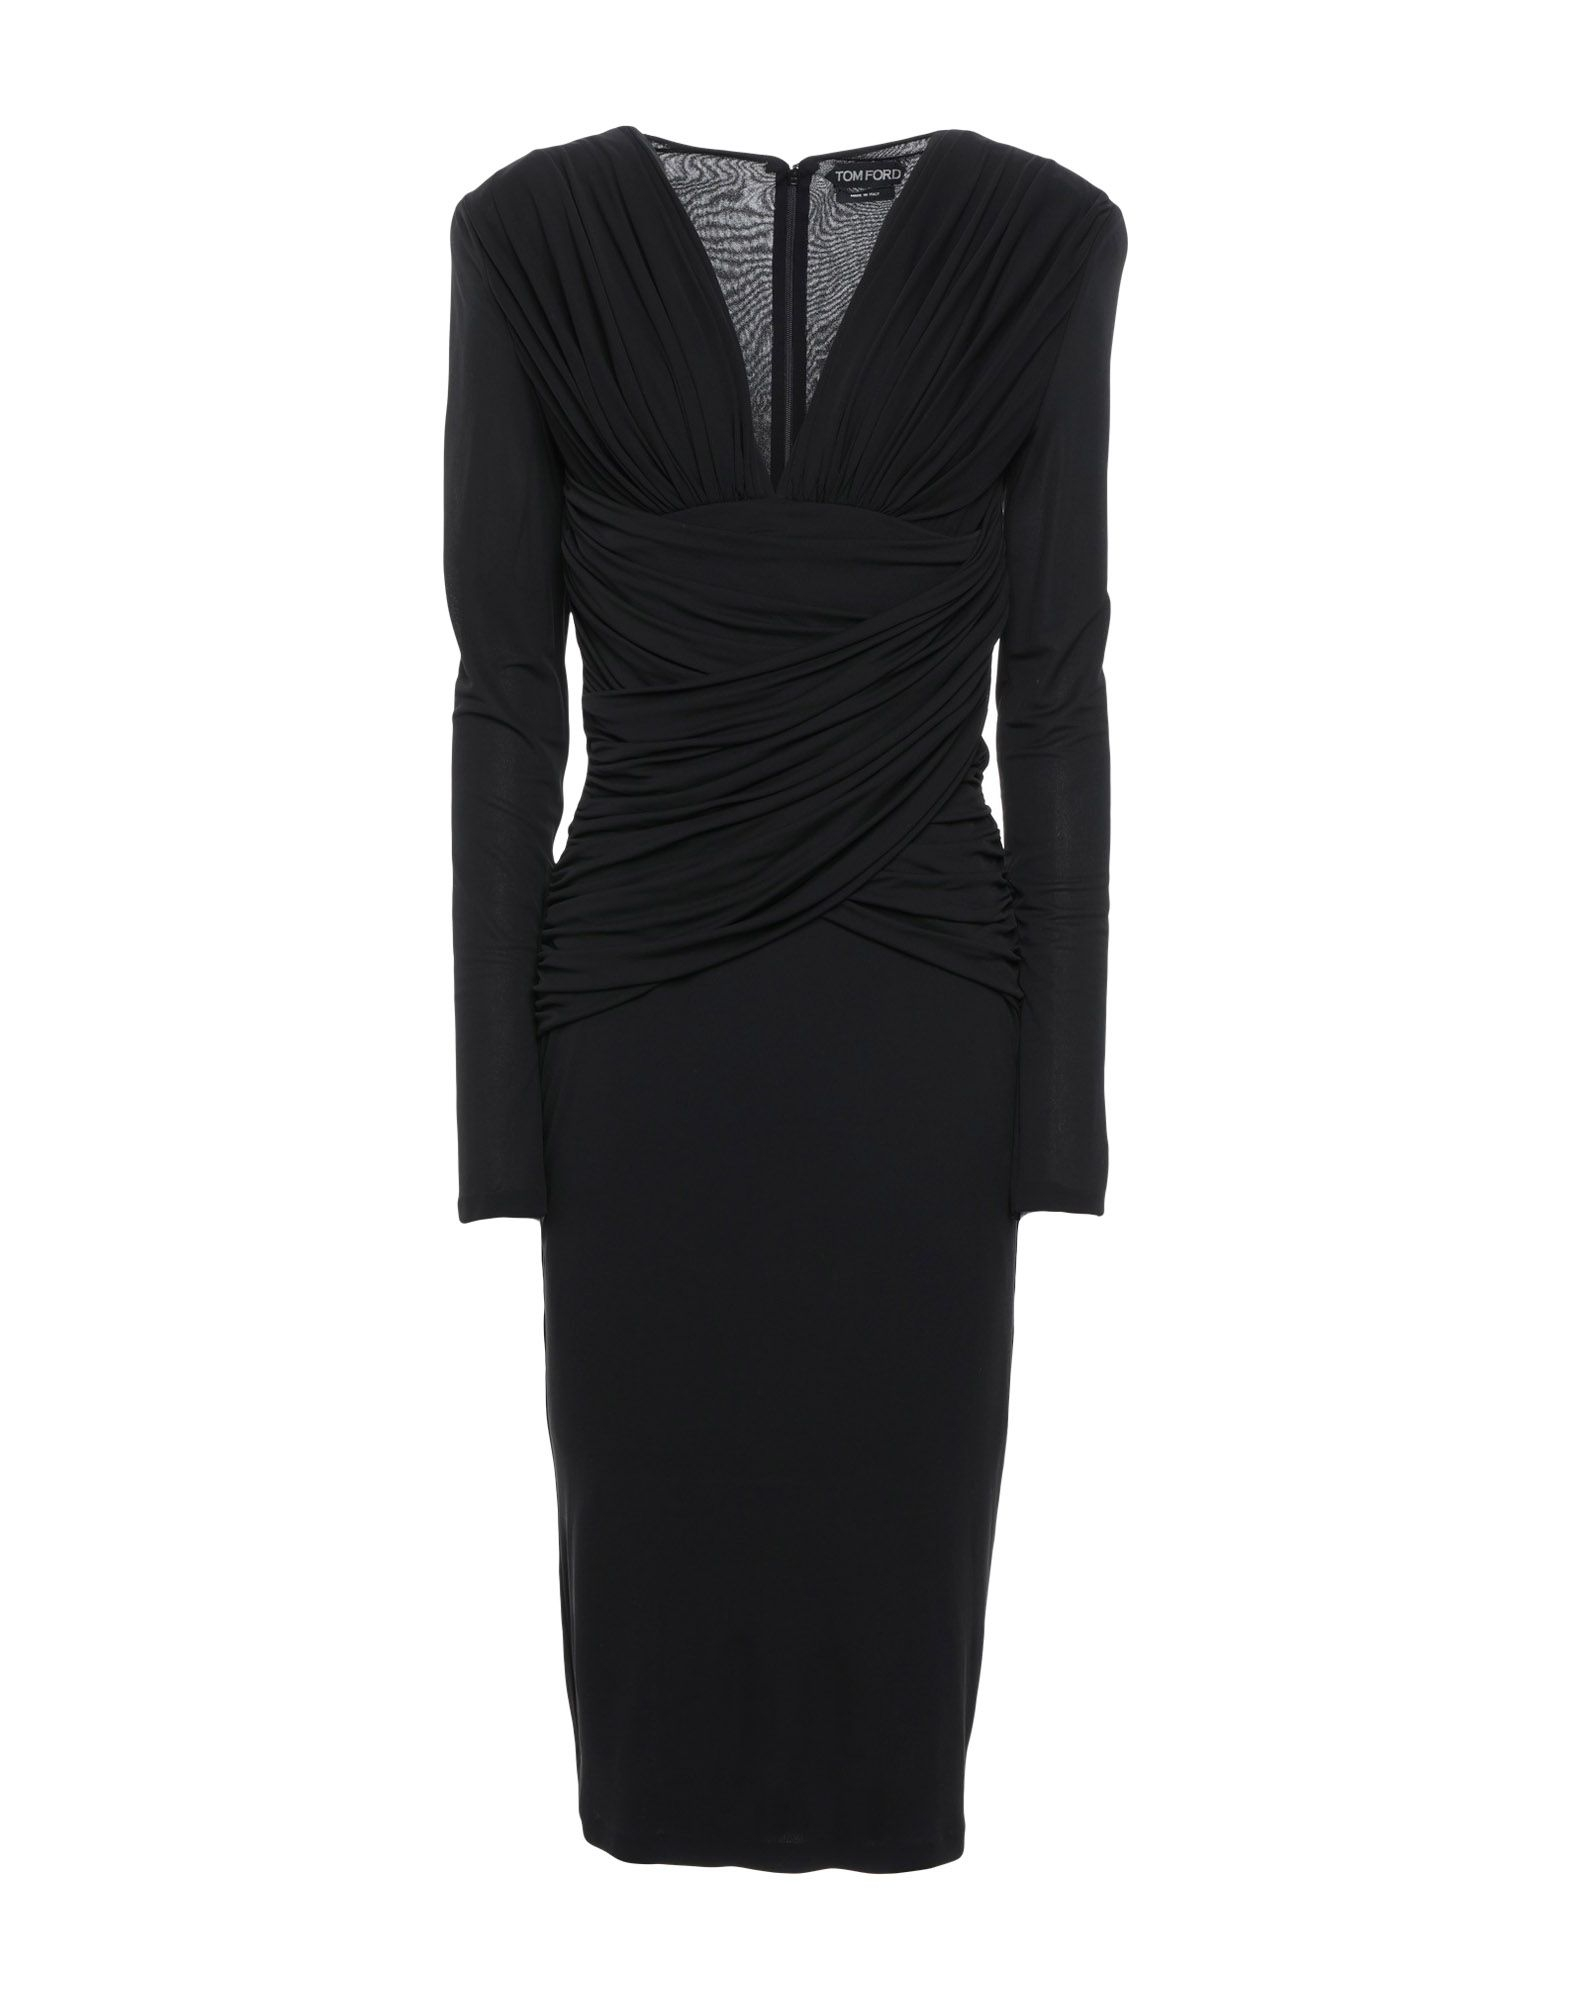 TOM FORD | TOM FORD Knee-Length Dresses 34913876 | Goxip